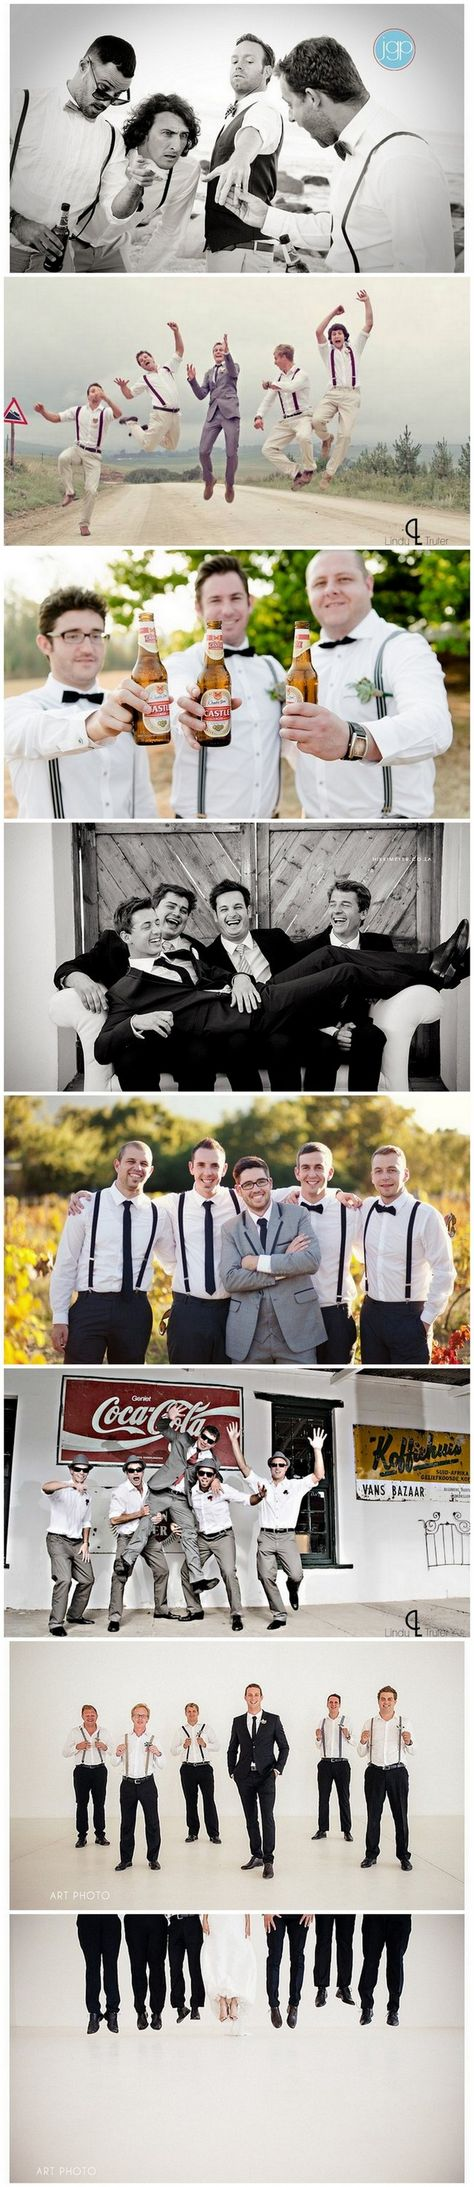 Groomsmen Wedding Photo Ideas and Poses http://www.confettidaydreams.com/wedding-photo-ideas-and-poses-for-your-wedding-party/